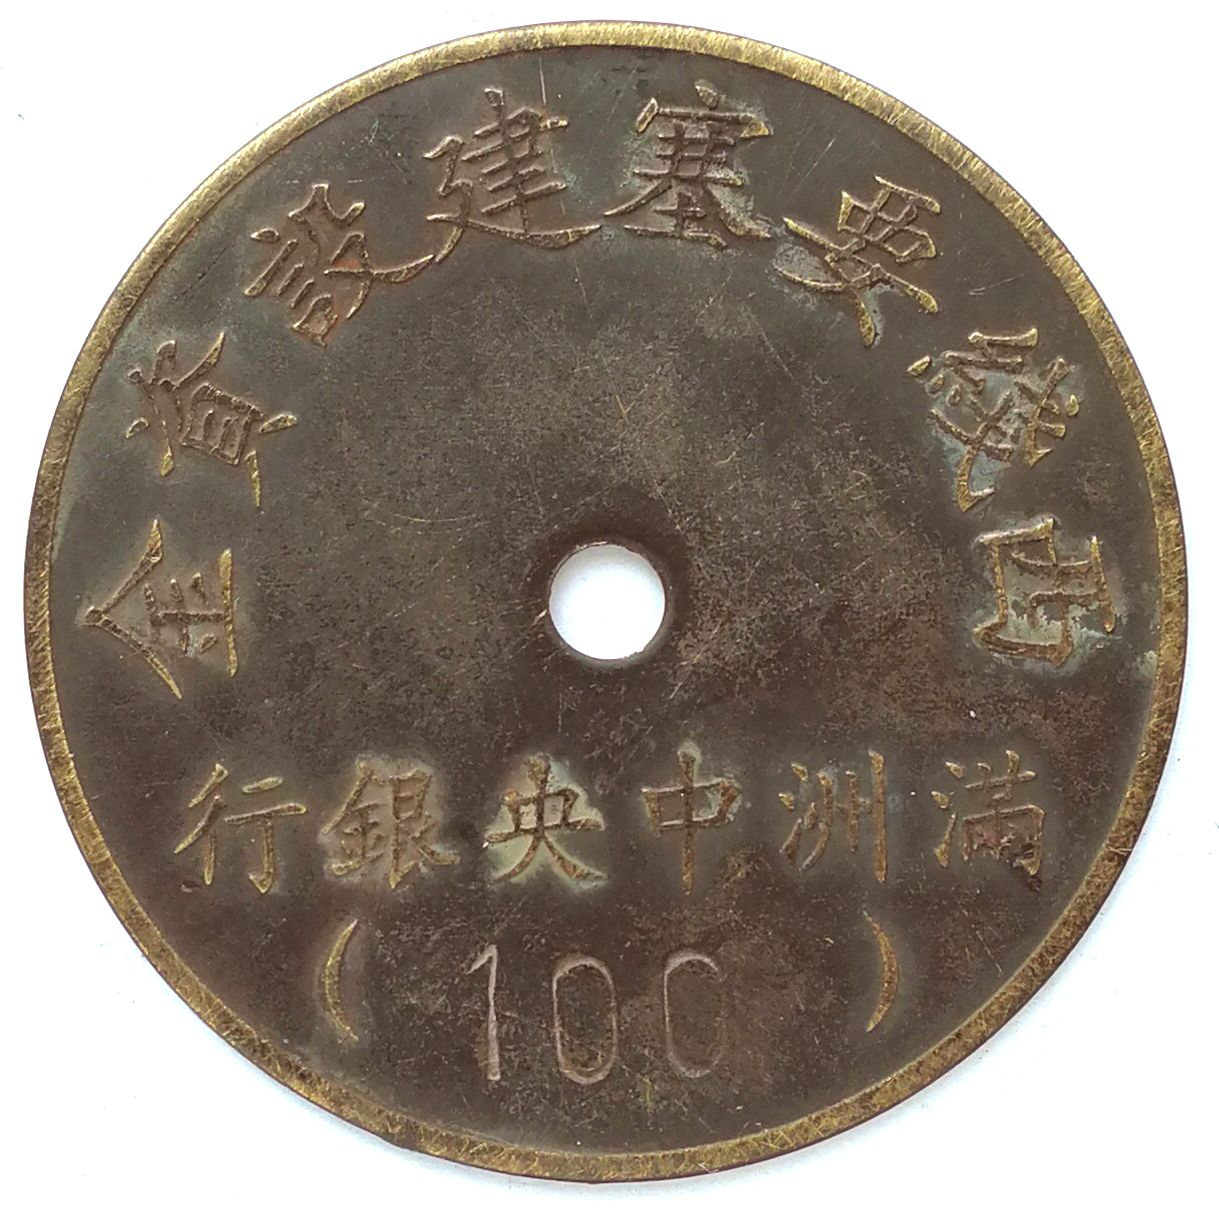 BT555, Manchukuo West Line Fortresses Construction Fund, 100 Yen Token, 1944